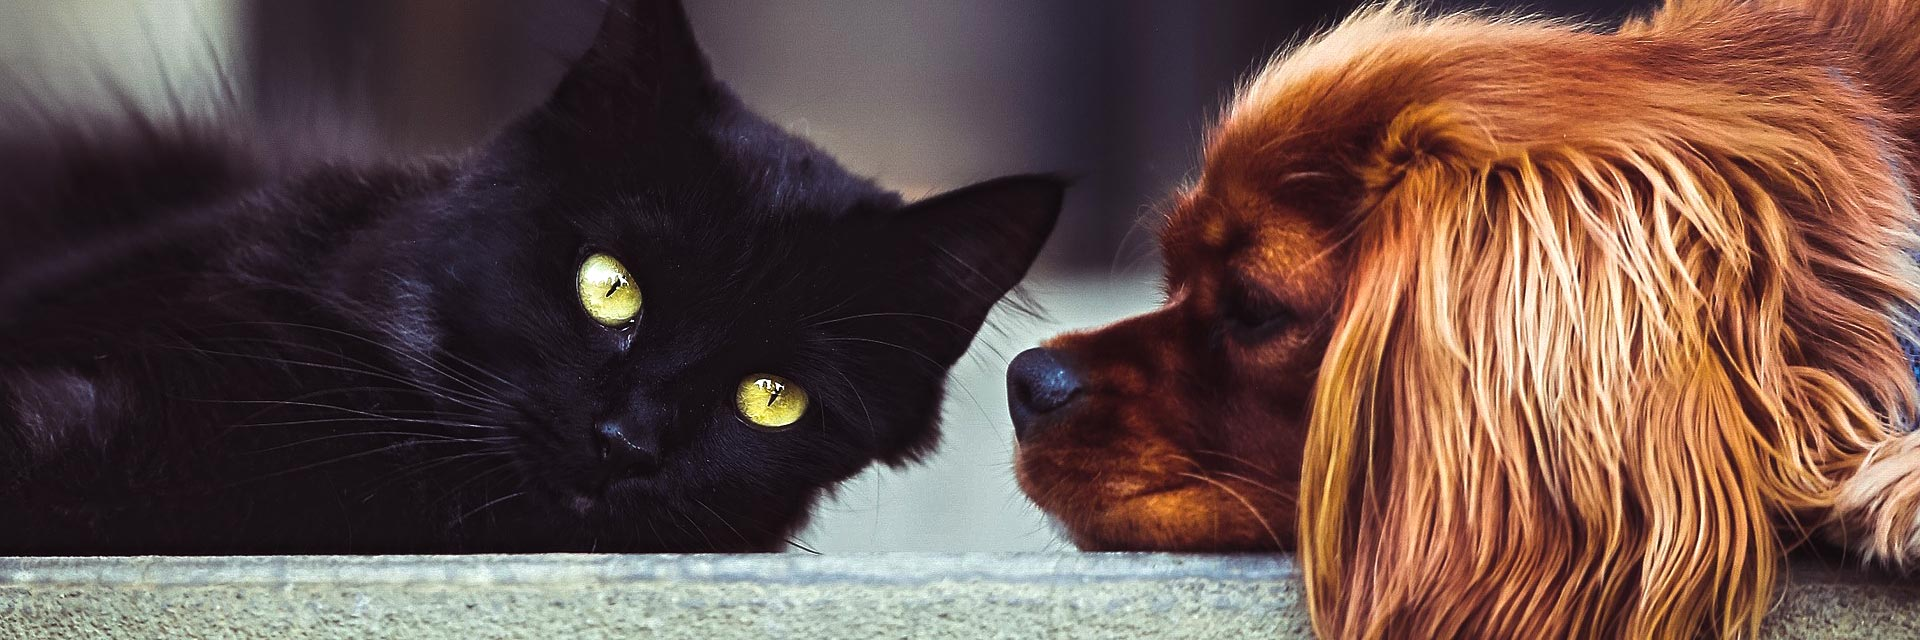 black cat and cocker spaniel puppy